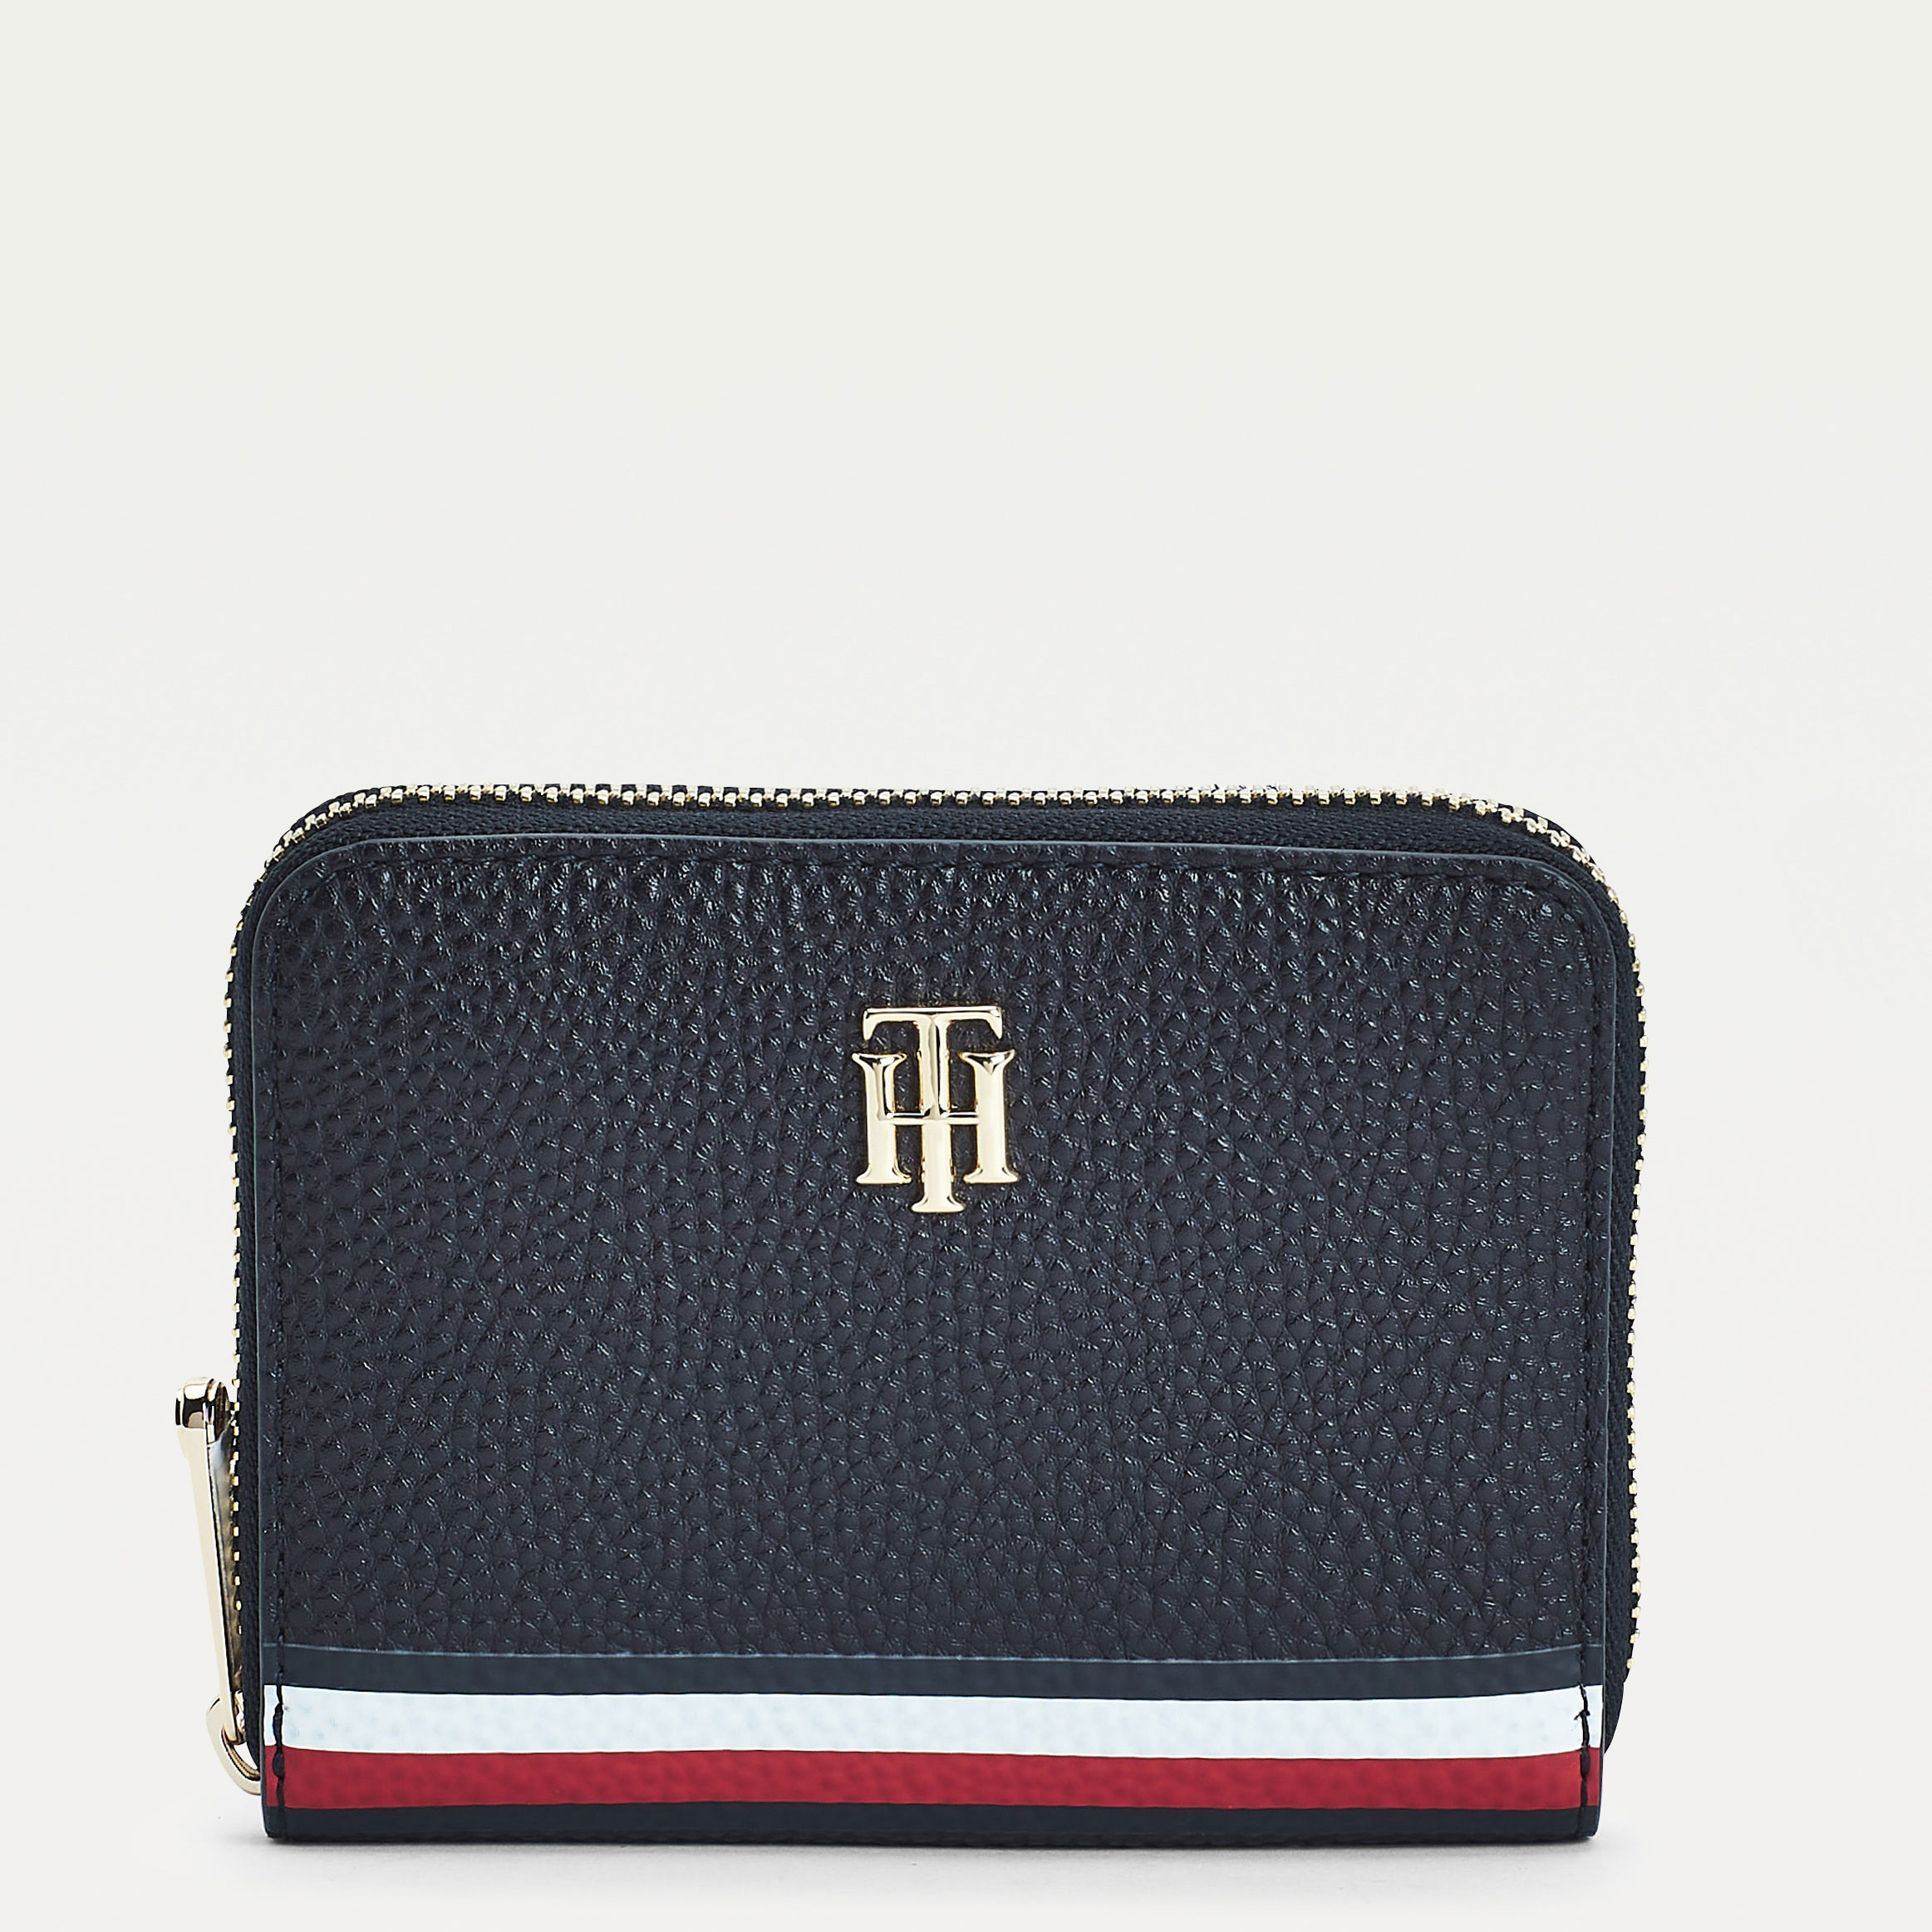 TOMMY HILFIGER Marroquinería Billetero Th Element Med Za Corp AW0AW10551-0GY